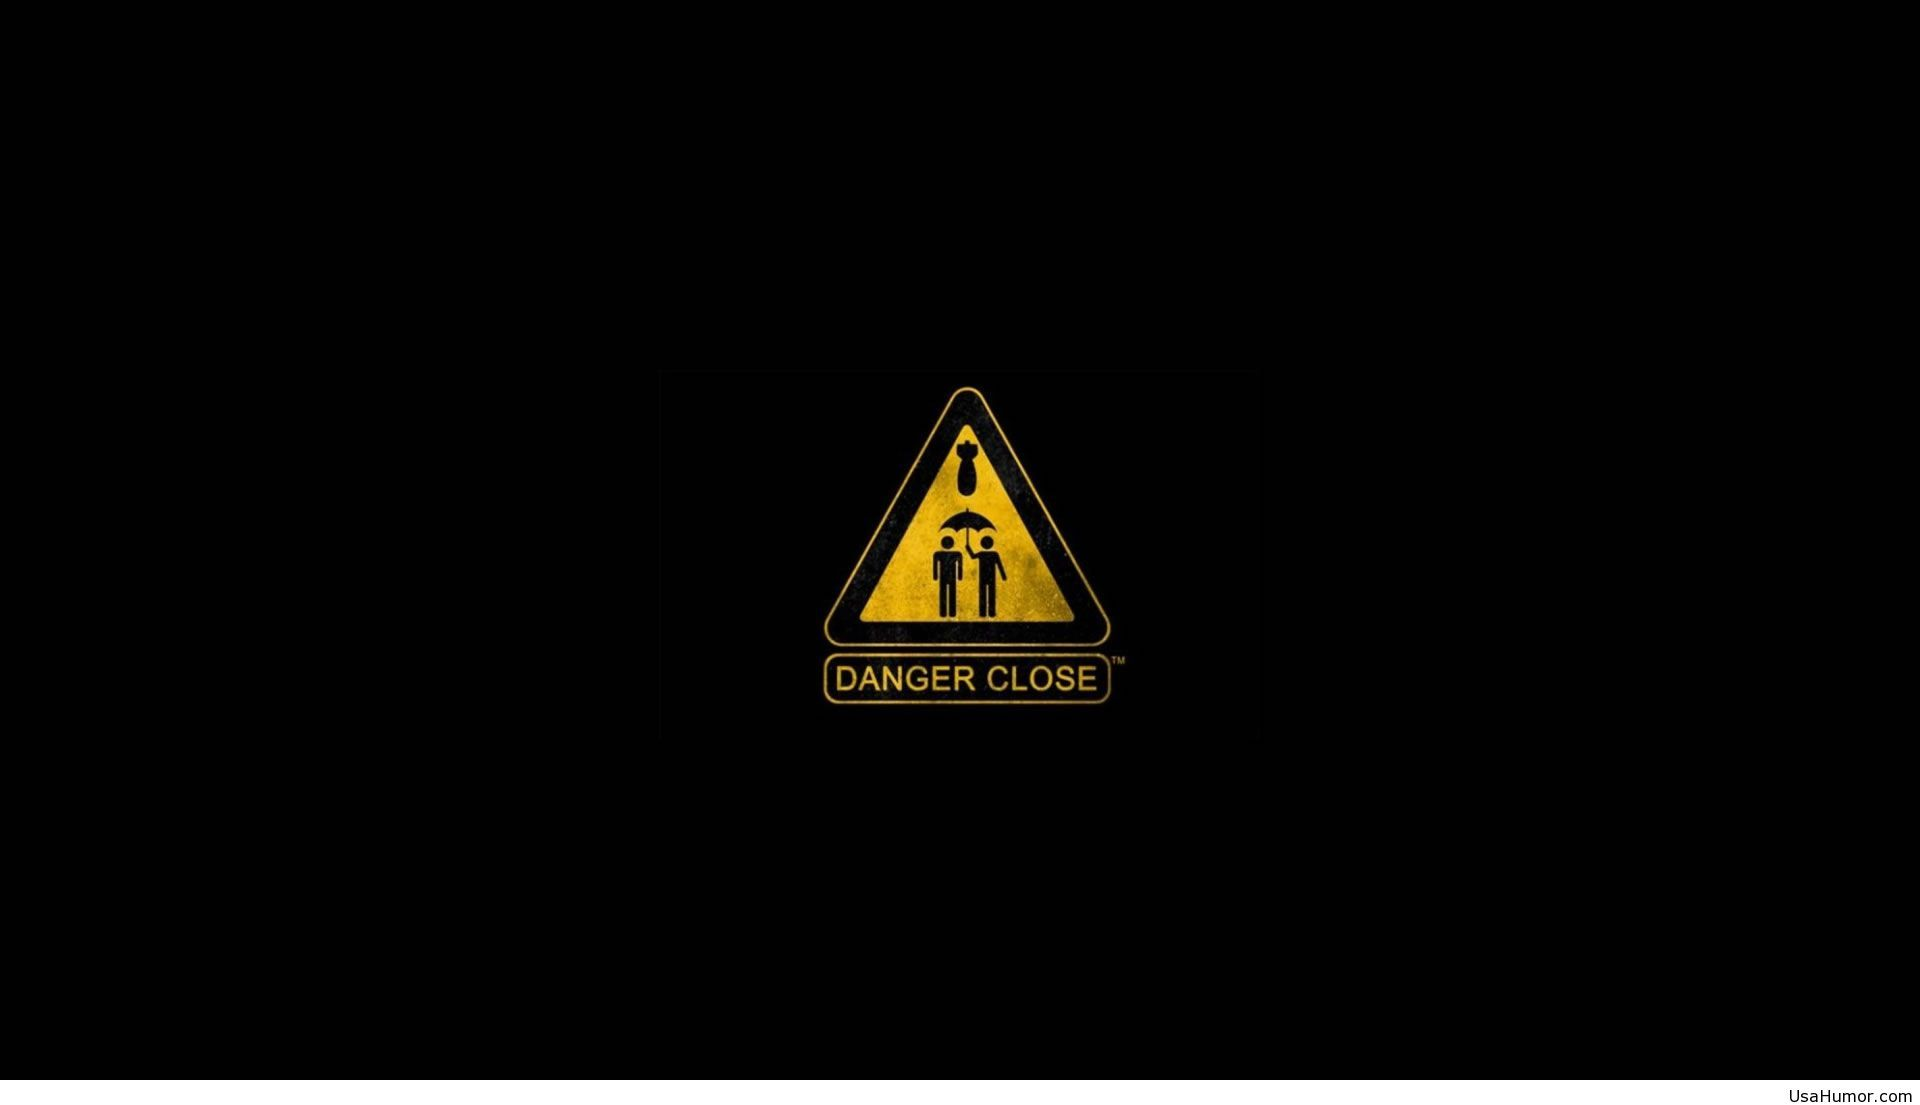 Danger Hd Wallpaper With Saying Cool And Funny Wallpapers Cool Wallpaper Computer Wallpaper Desktop Wallpapers